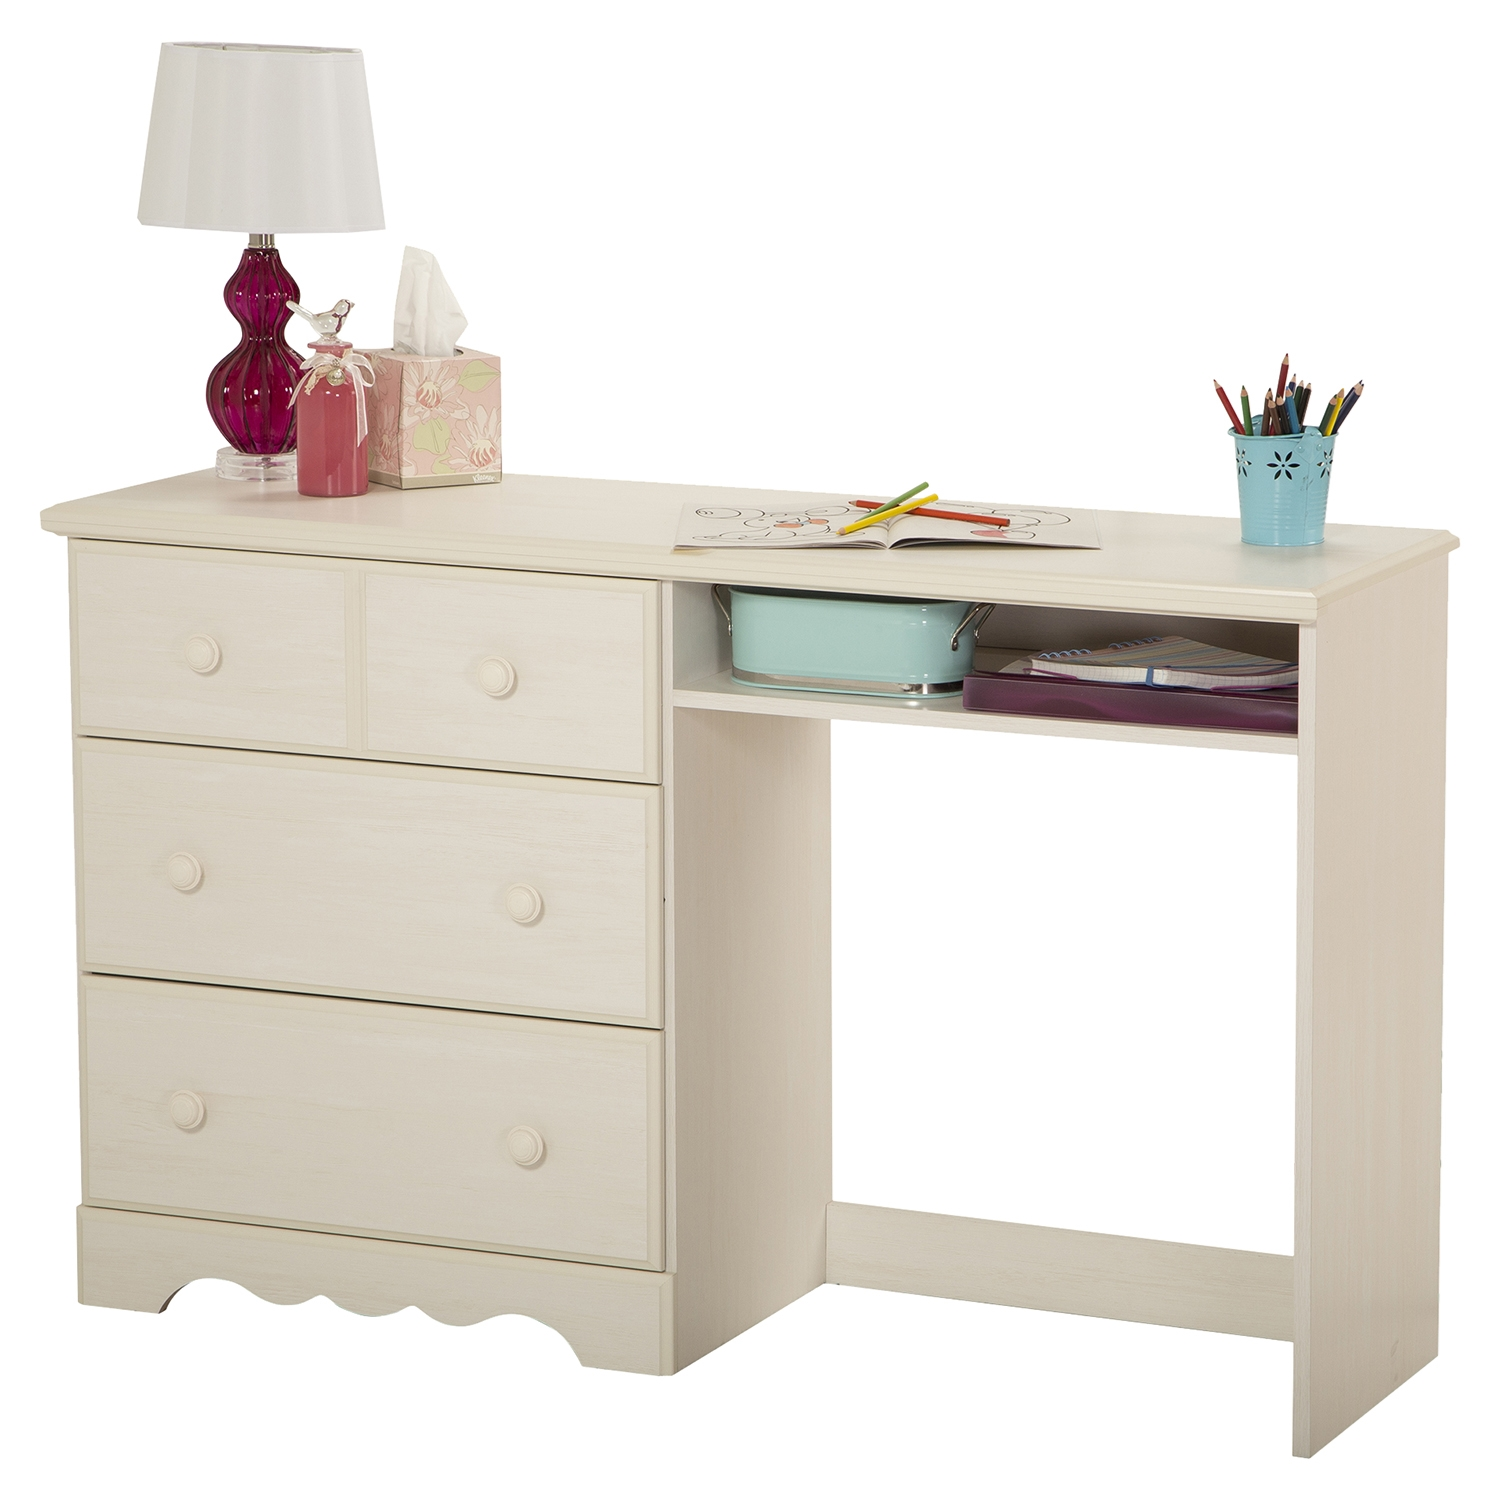 Summer Breeze Desk - 3 Drawers, White Wash - SS-3210070